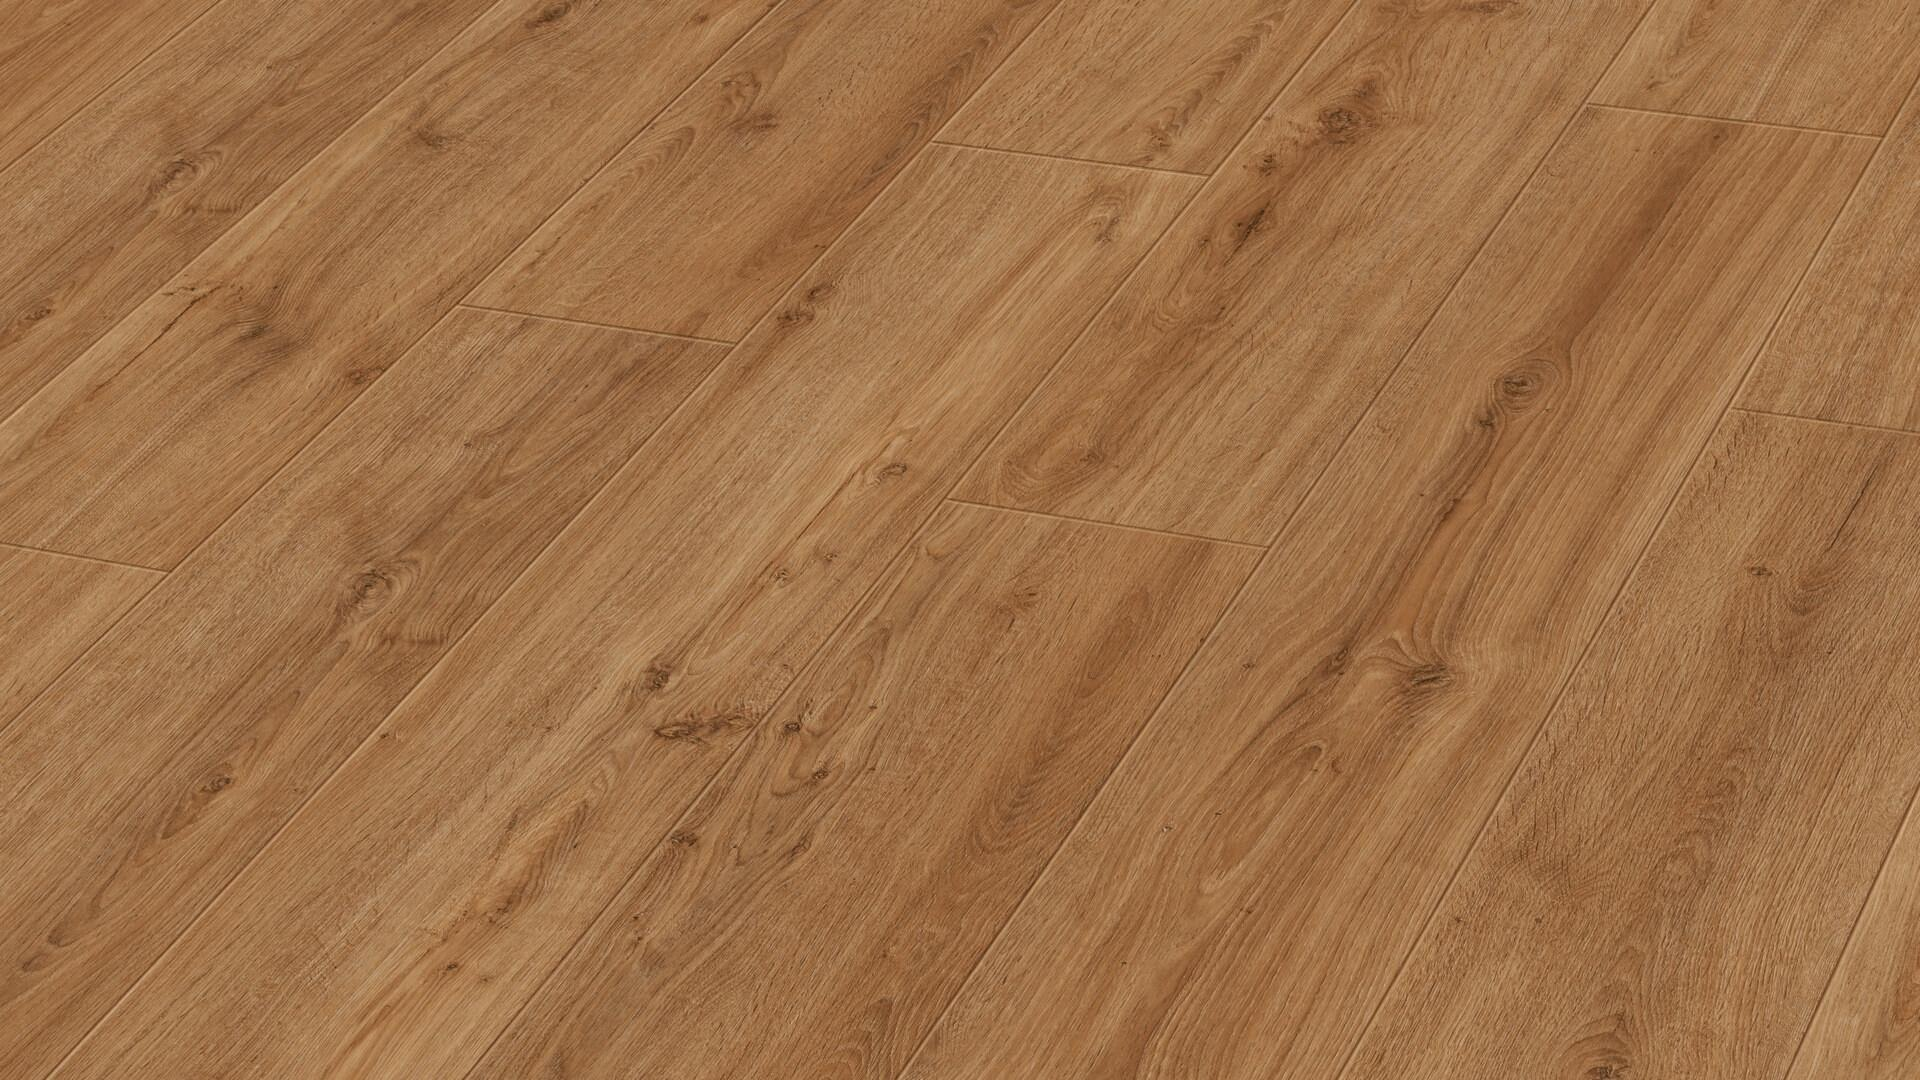 Design flooring MeisterDesign. flex DD 400 Golden oak 6999